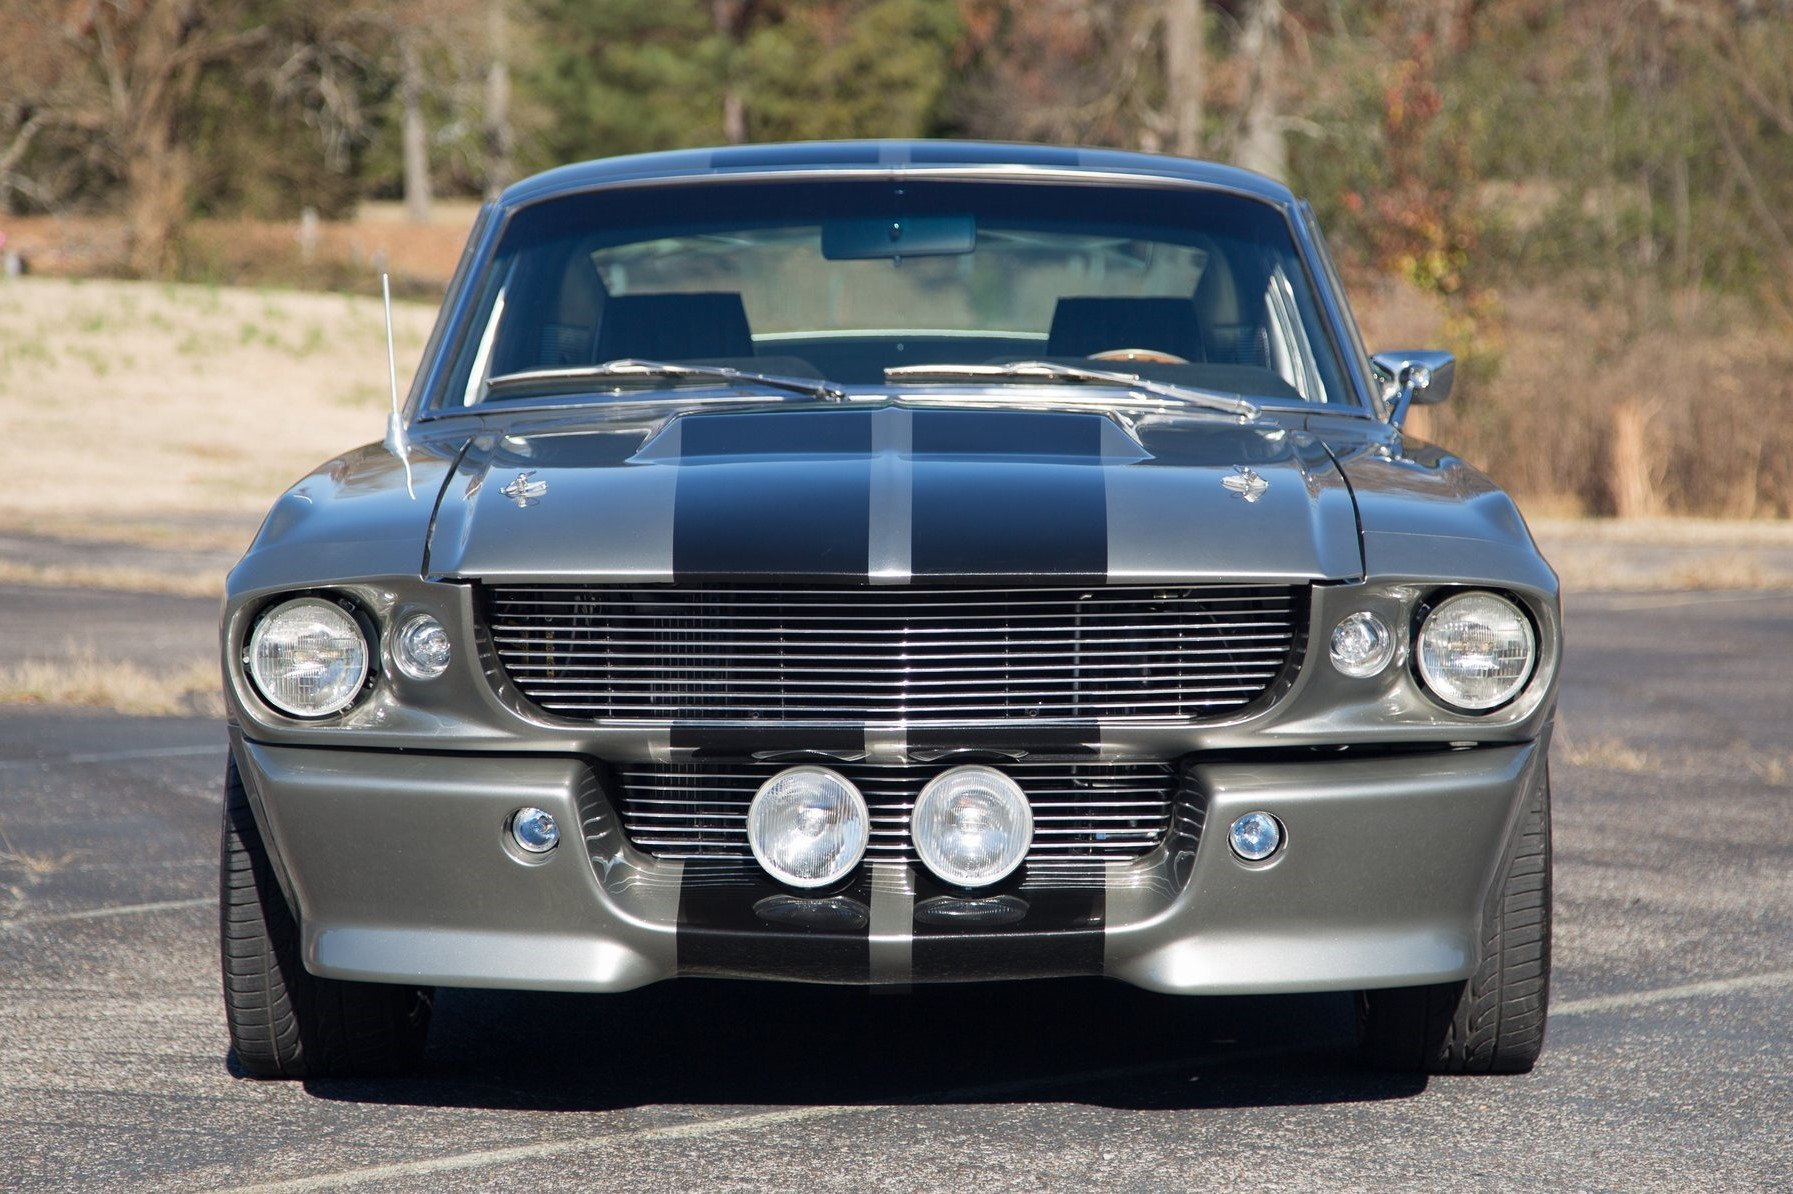 1967 Mustang Eleanor Coupe